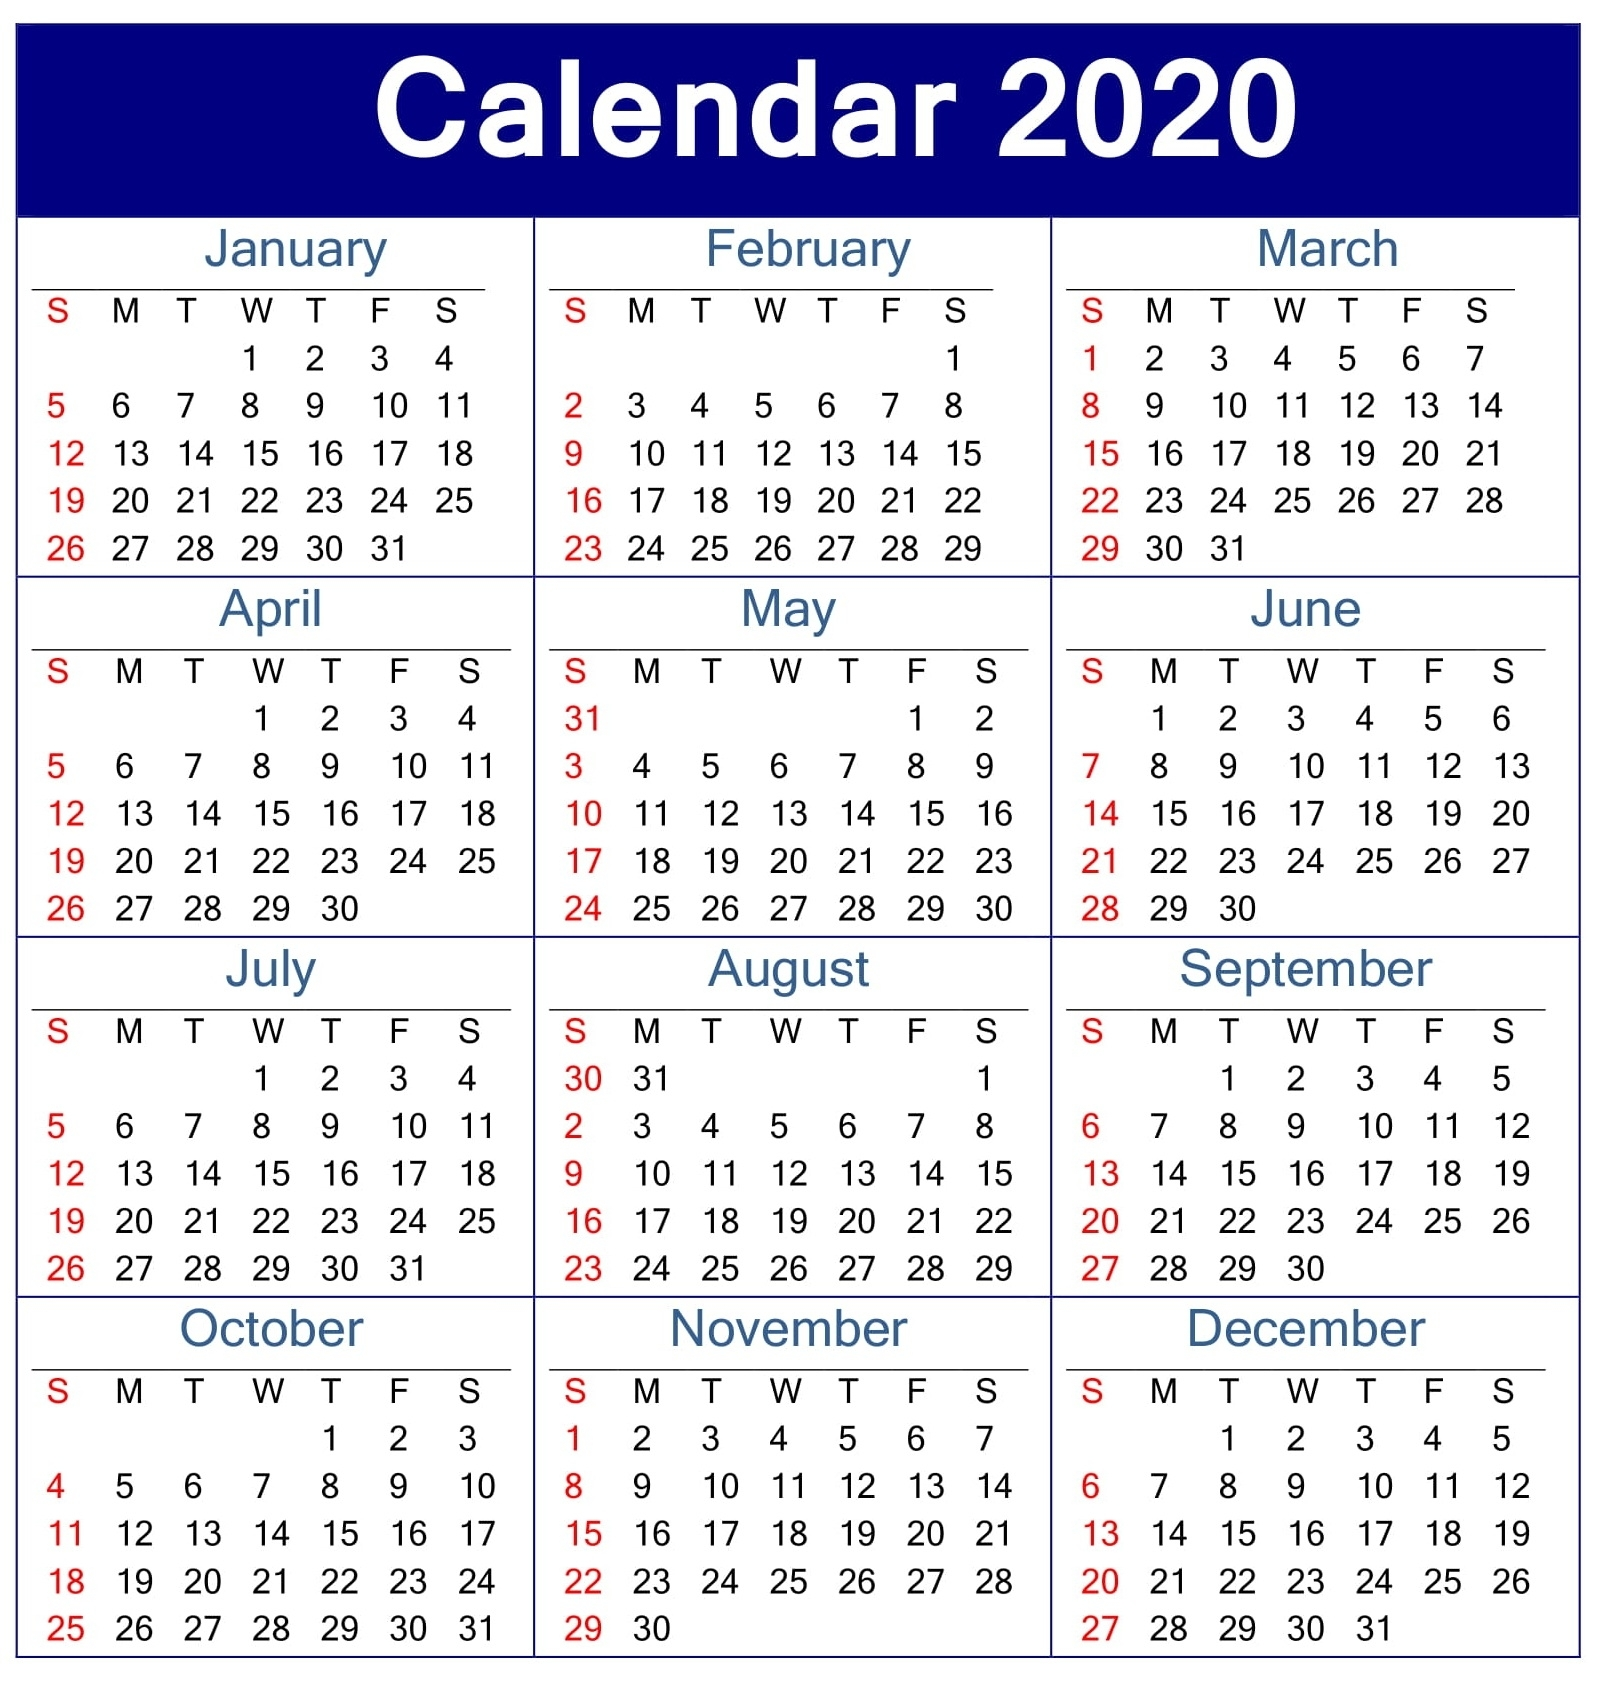 Printable Calendar 2020 Pdf Template For Landscape And Vertical pertaining to Employee Attendance Calendar 2020 Printable